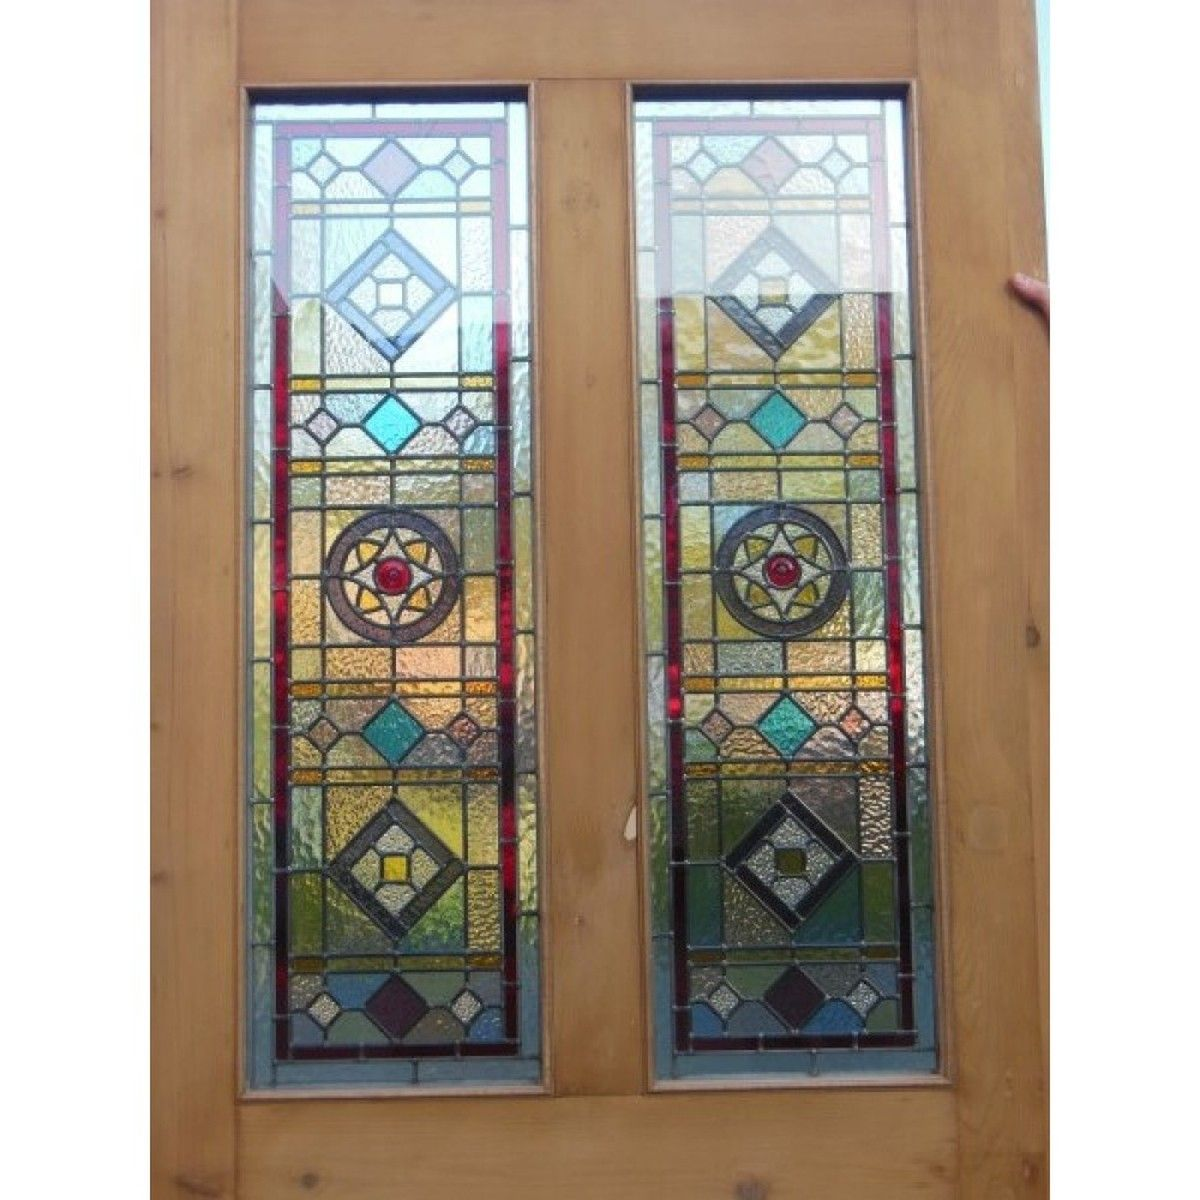 Doors And Windows Victorian Edwardian Original 4 Panelled Door Cheshire Stained Glass Door Making Stained Glass Painted Doors